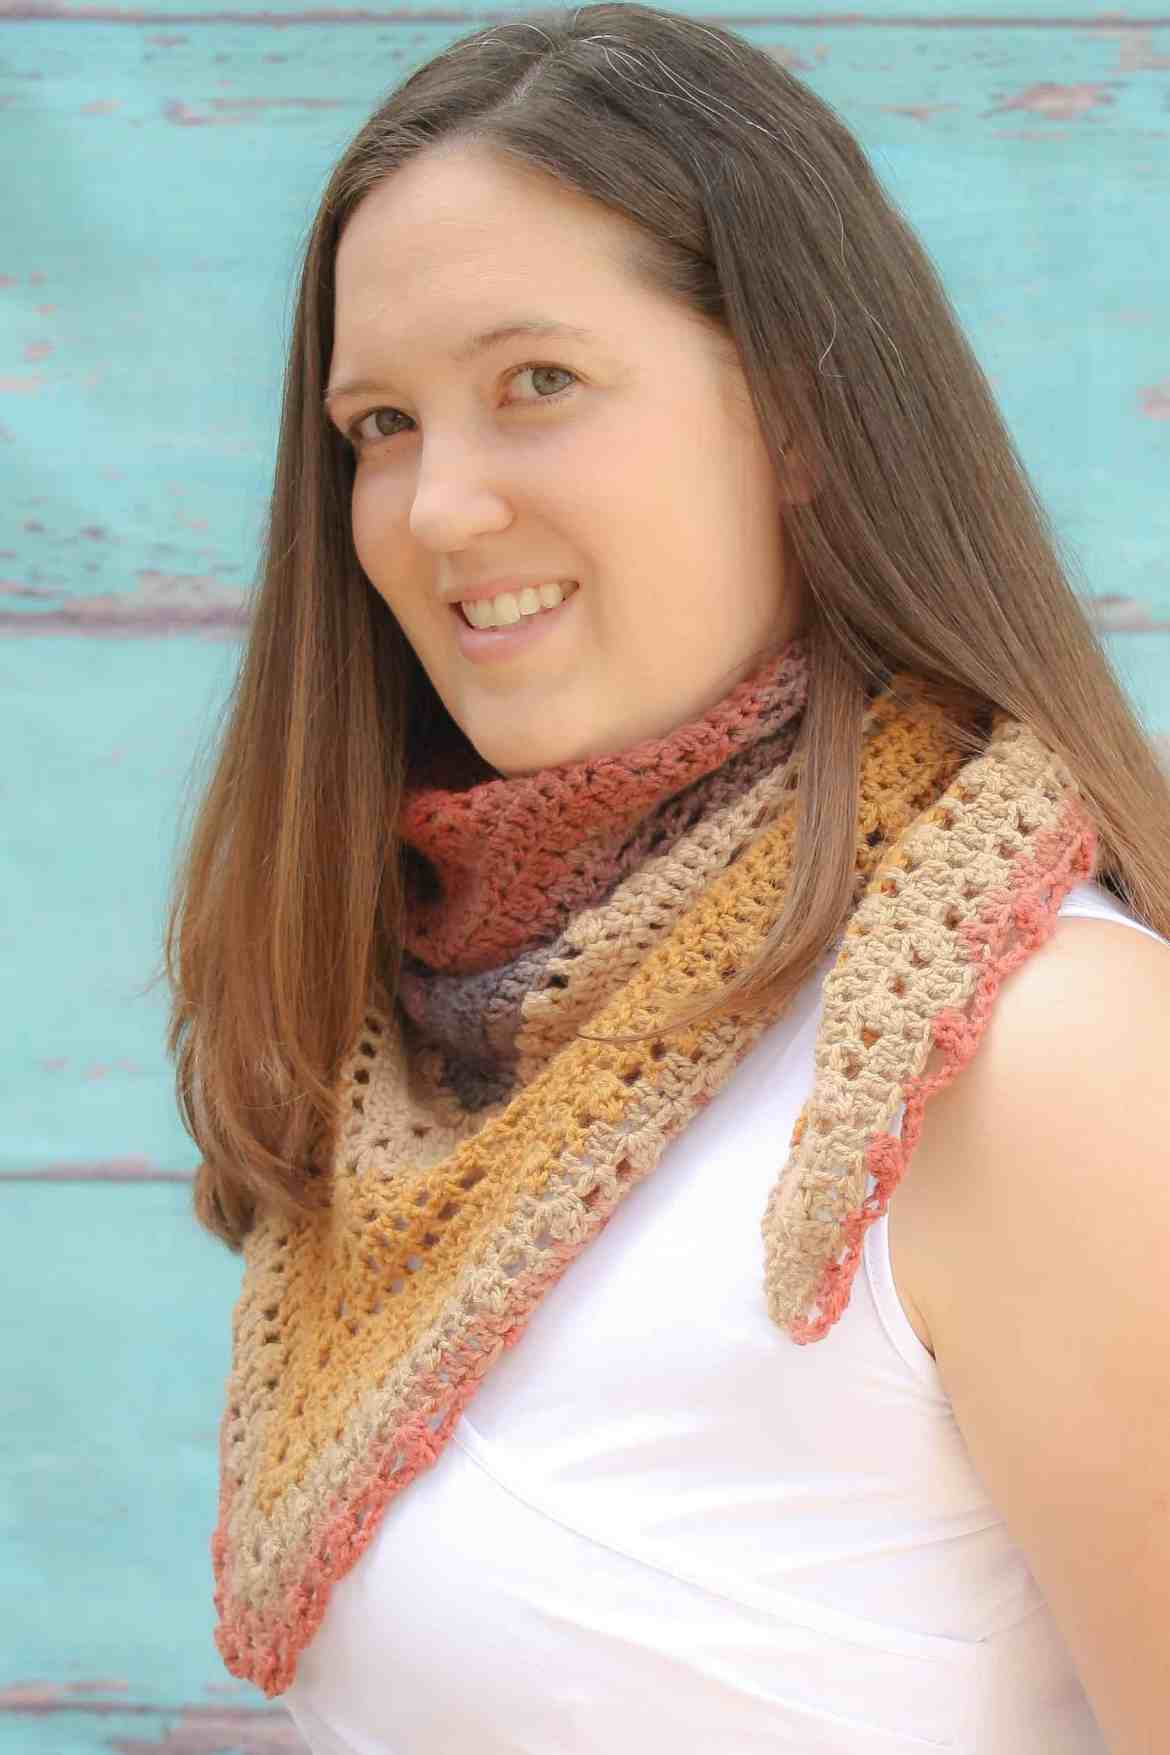 Desert Sunset shawl is a free crochet pattern that is the intermediate crocheter. It uses very few stitches and all special stitches are explained. This is a fun project that creates a unique design. This project only take one skein of Lion Brand Mandala yarn.